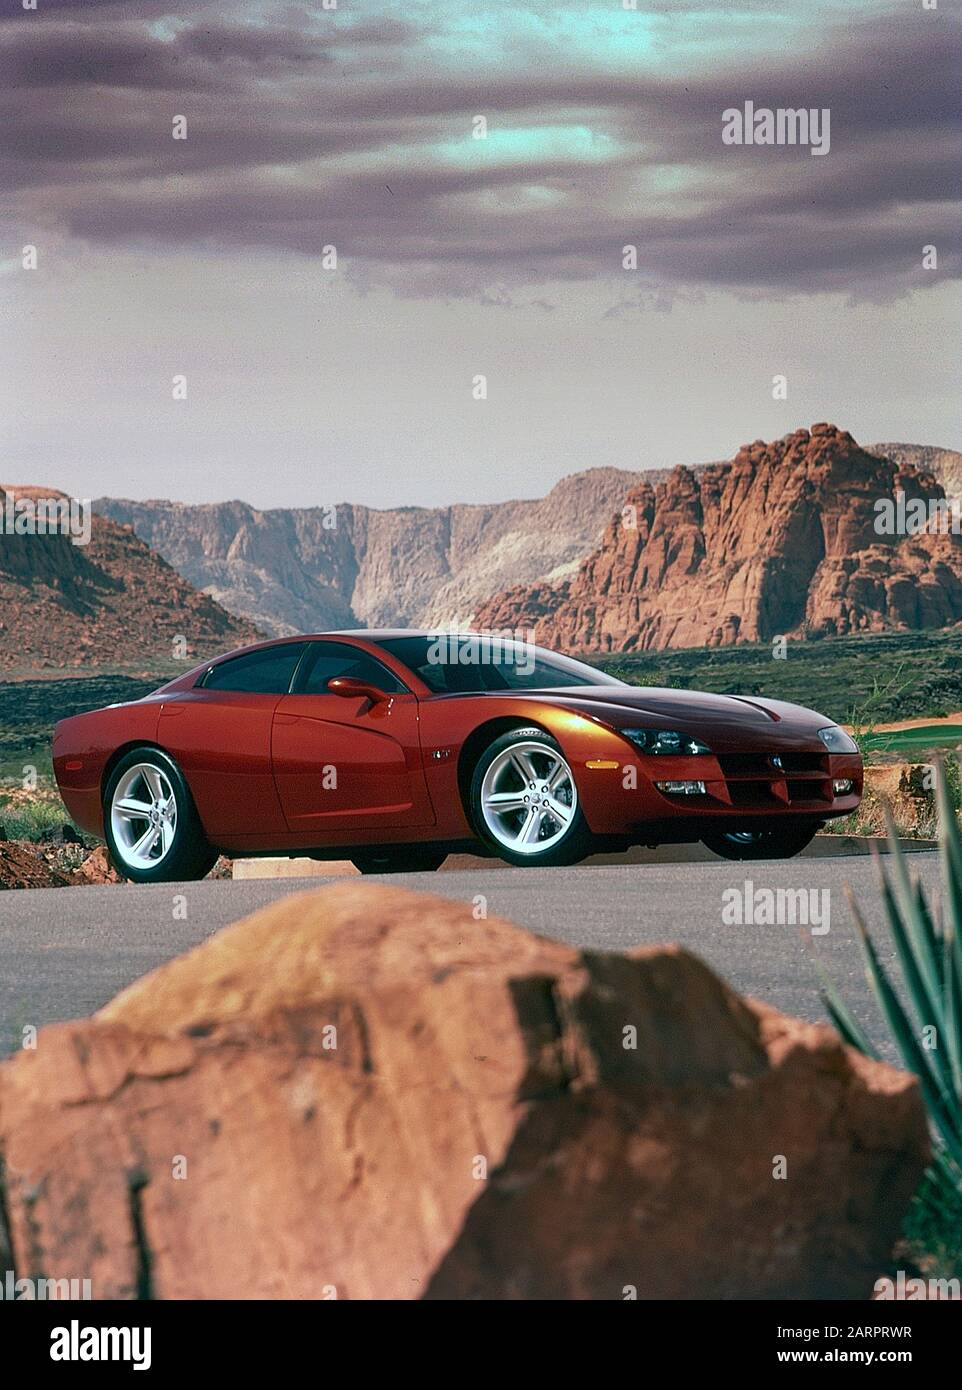 Dodge Charger Concept Car 1999 Foto Stock